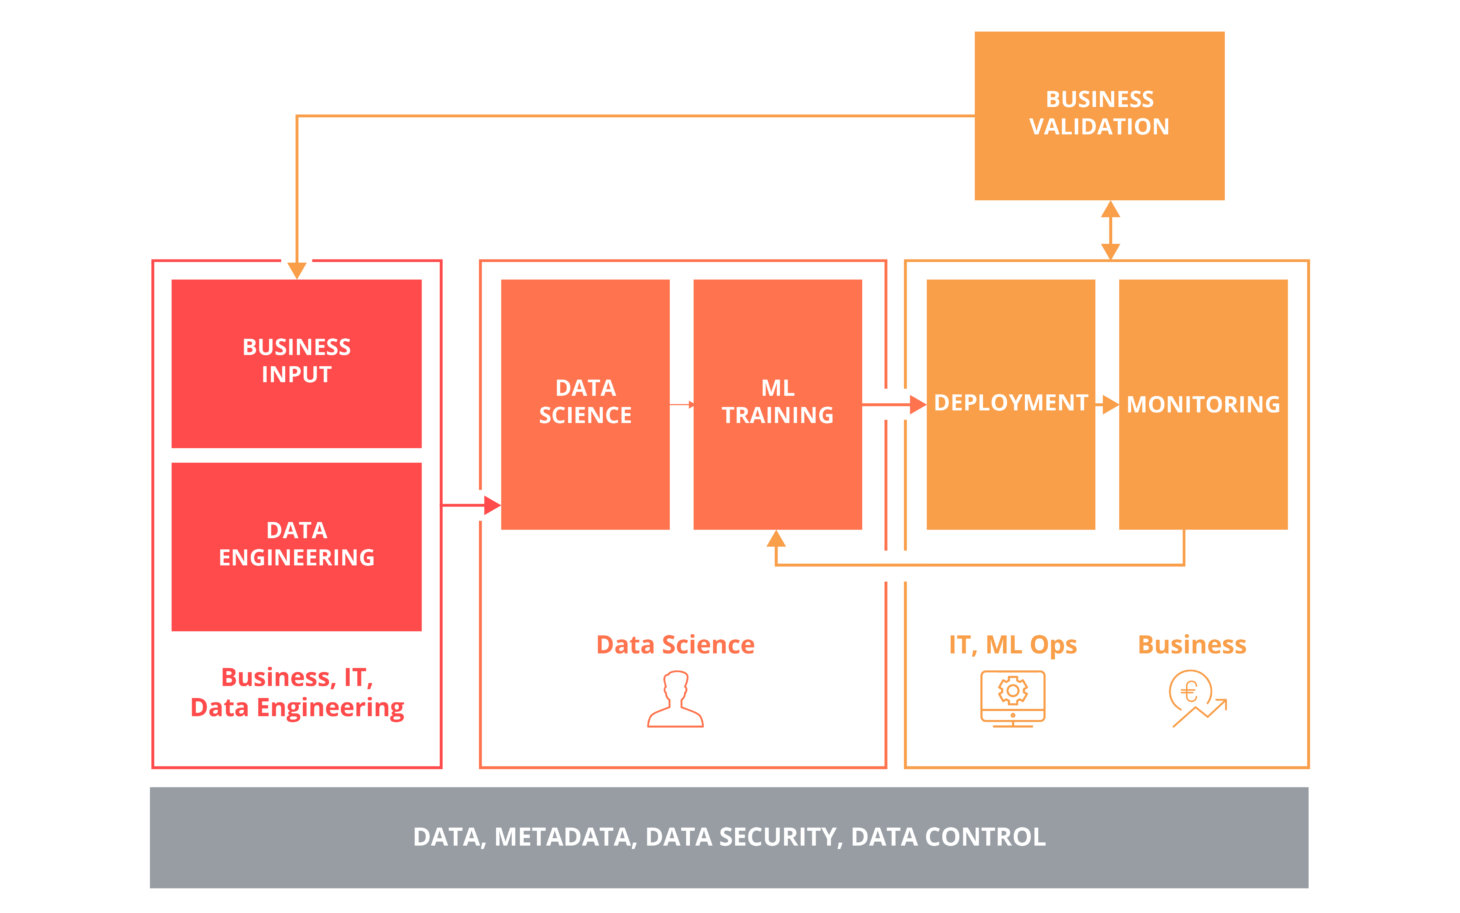 This data science diagram shows a machine learning model in enterprise production environments.